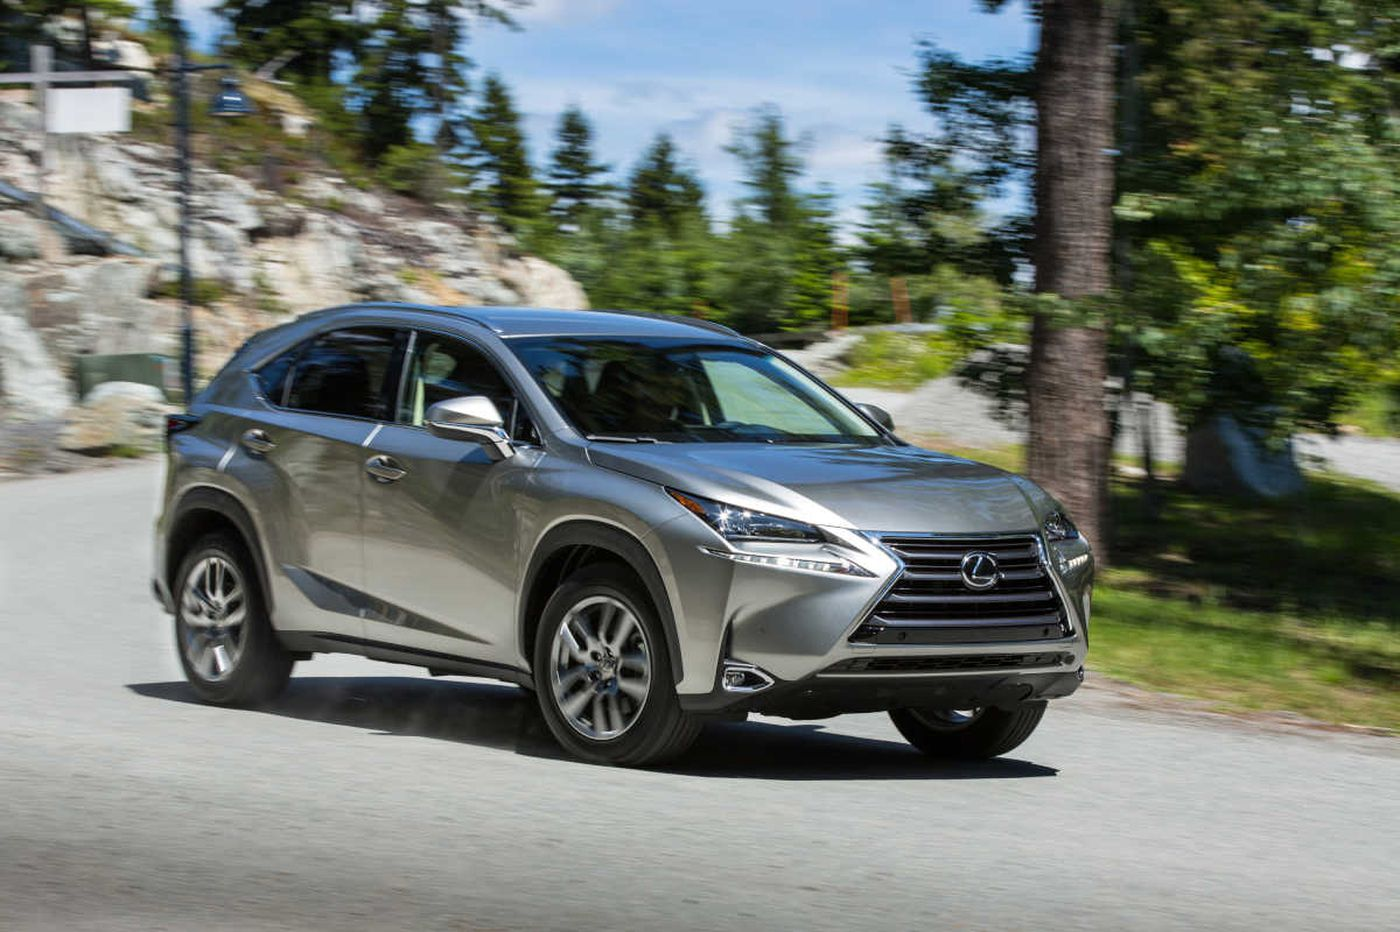 2017 Lexus Nx200t Offers Luxury Performance And Infuriating Electronics